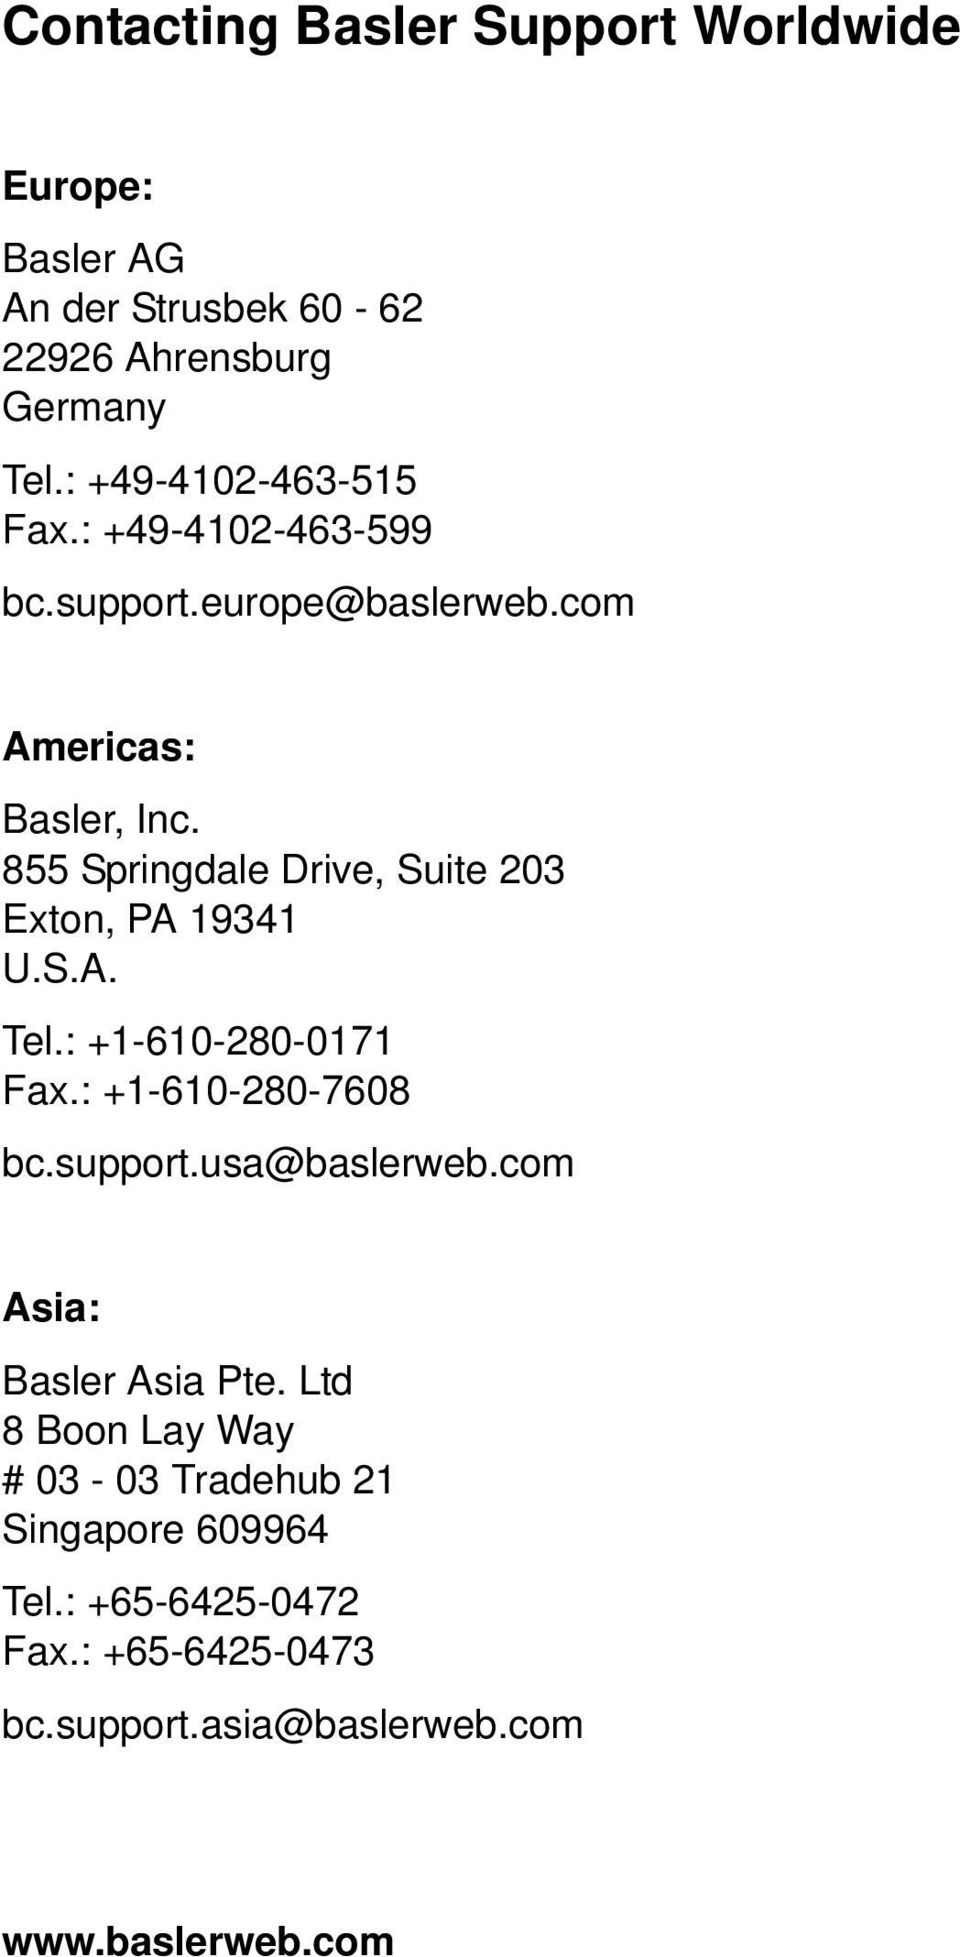 855 Springdale Drive, Suite 203 Exton, PA 19341 U.S.A. Tel.: +1-610-280-0171 Fax.: +1-610-280-7608 bc.support.usa@baslerweb.